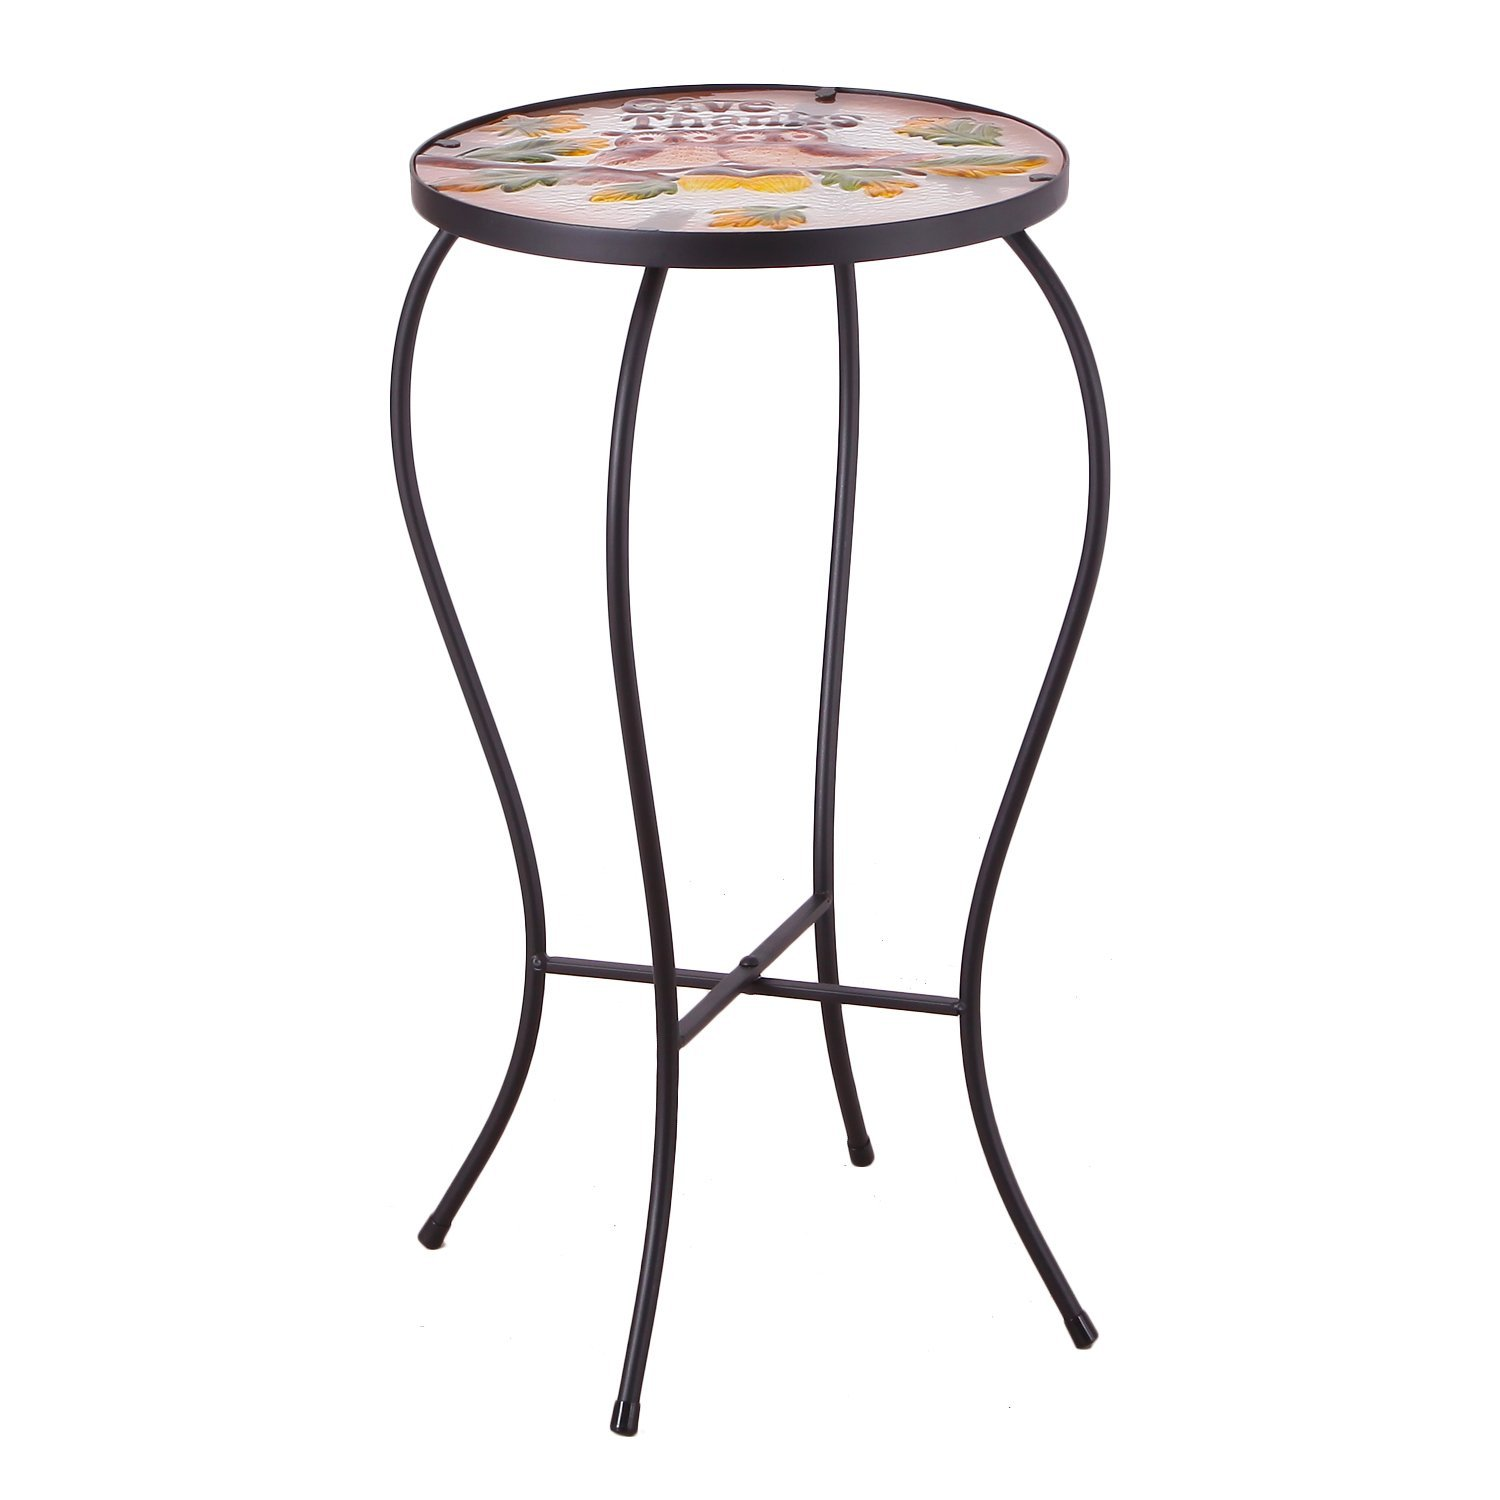 elegan glass side table plant stand patio zaltana mosaic outdoor accent garden stump pier one imports furniture mid century modern console target black dresser white contemporary